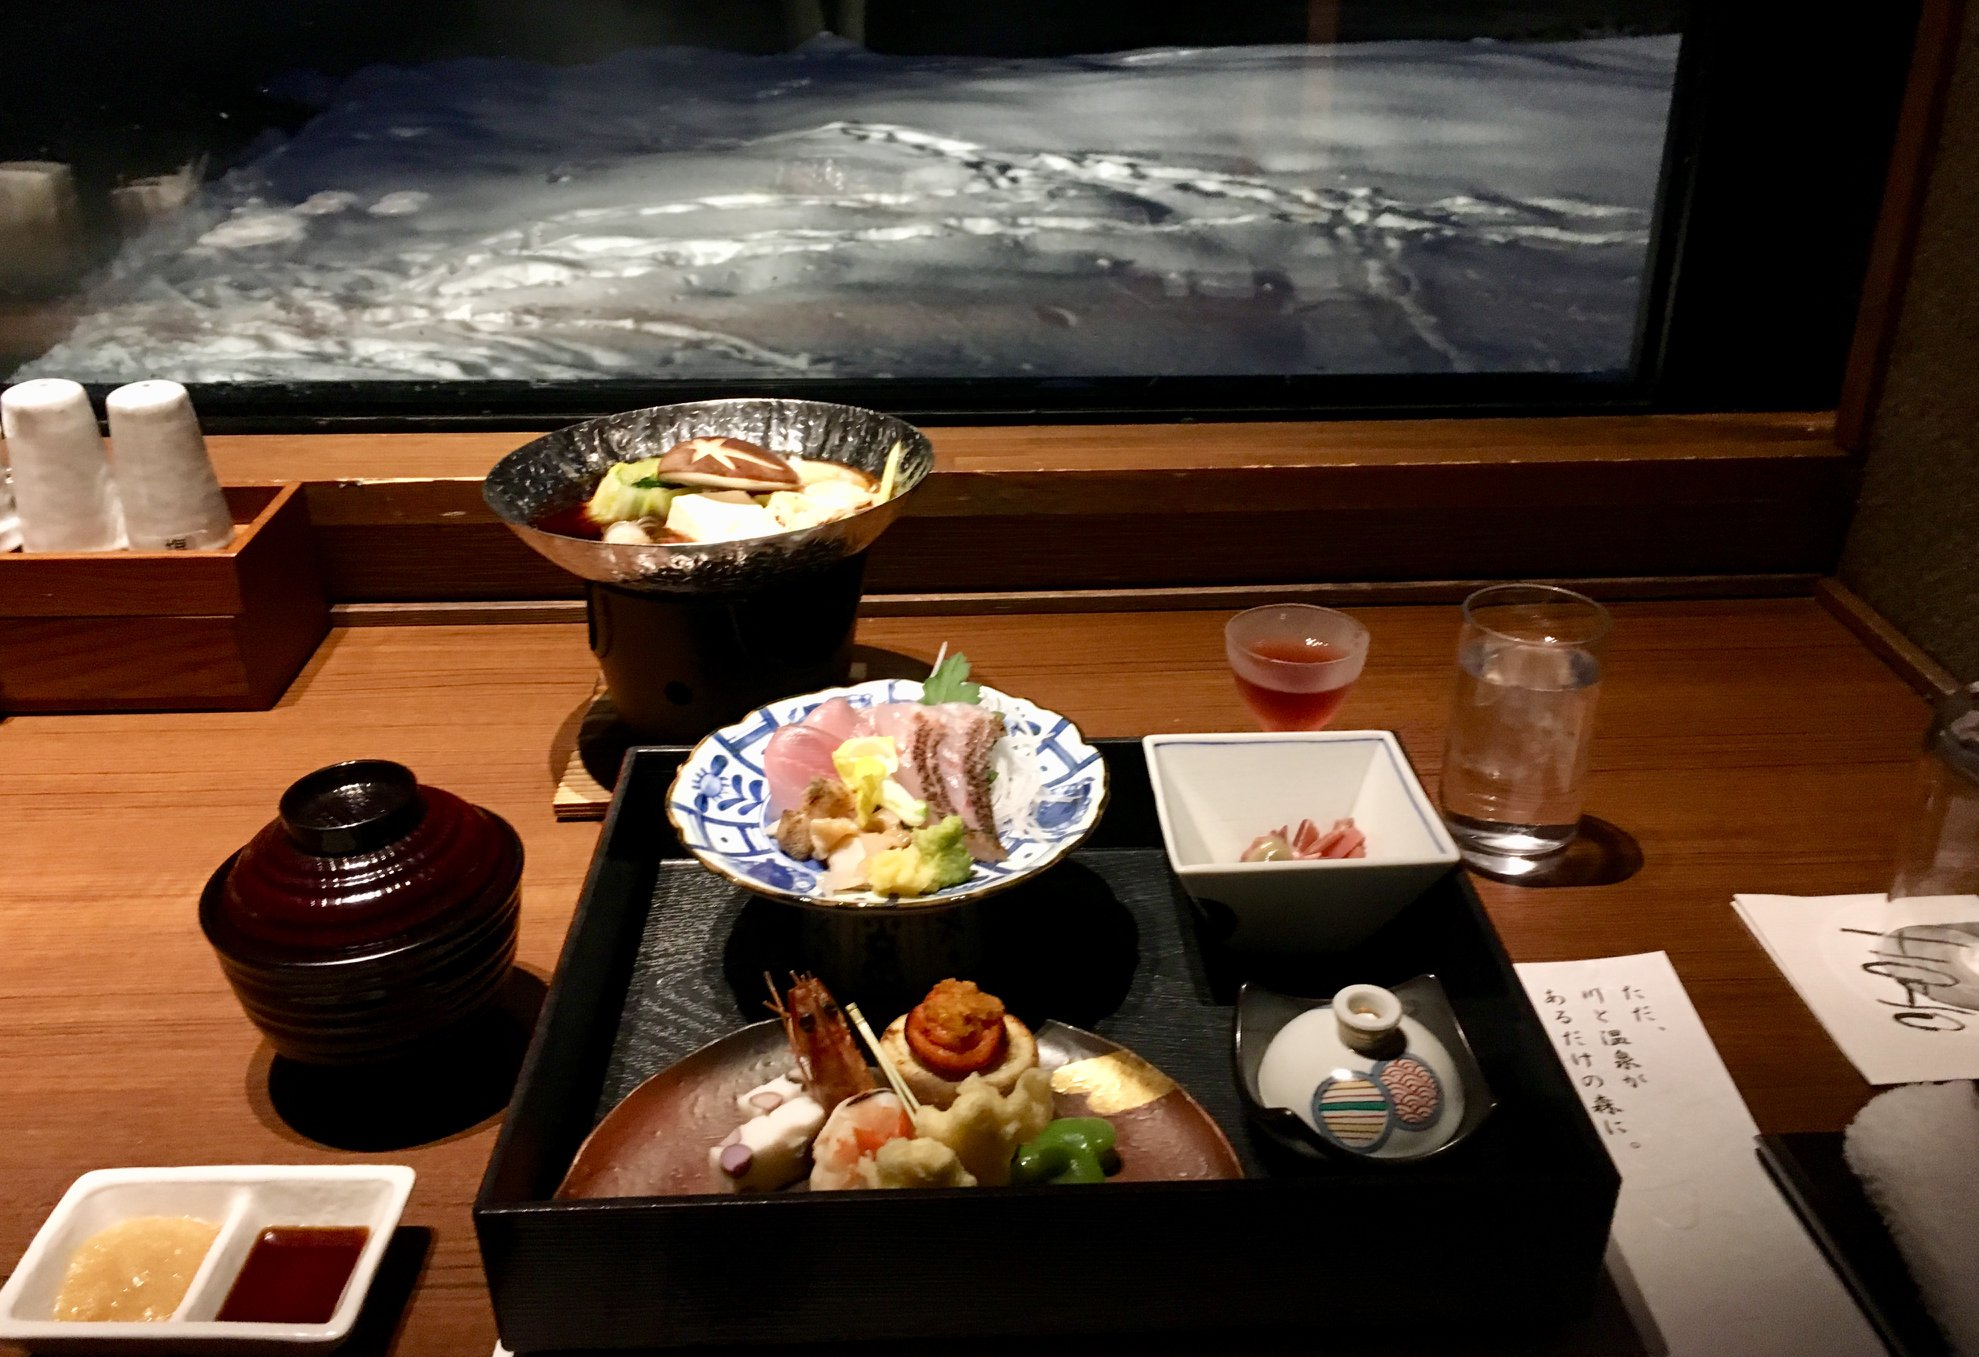 Another spectacular kaiseki meal. Out the window is the Akan river and the paths through the snow were made by local dear who like to sleep on the ground warmed by the hot springs.